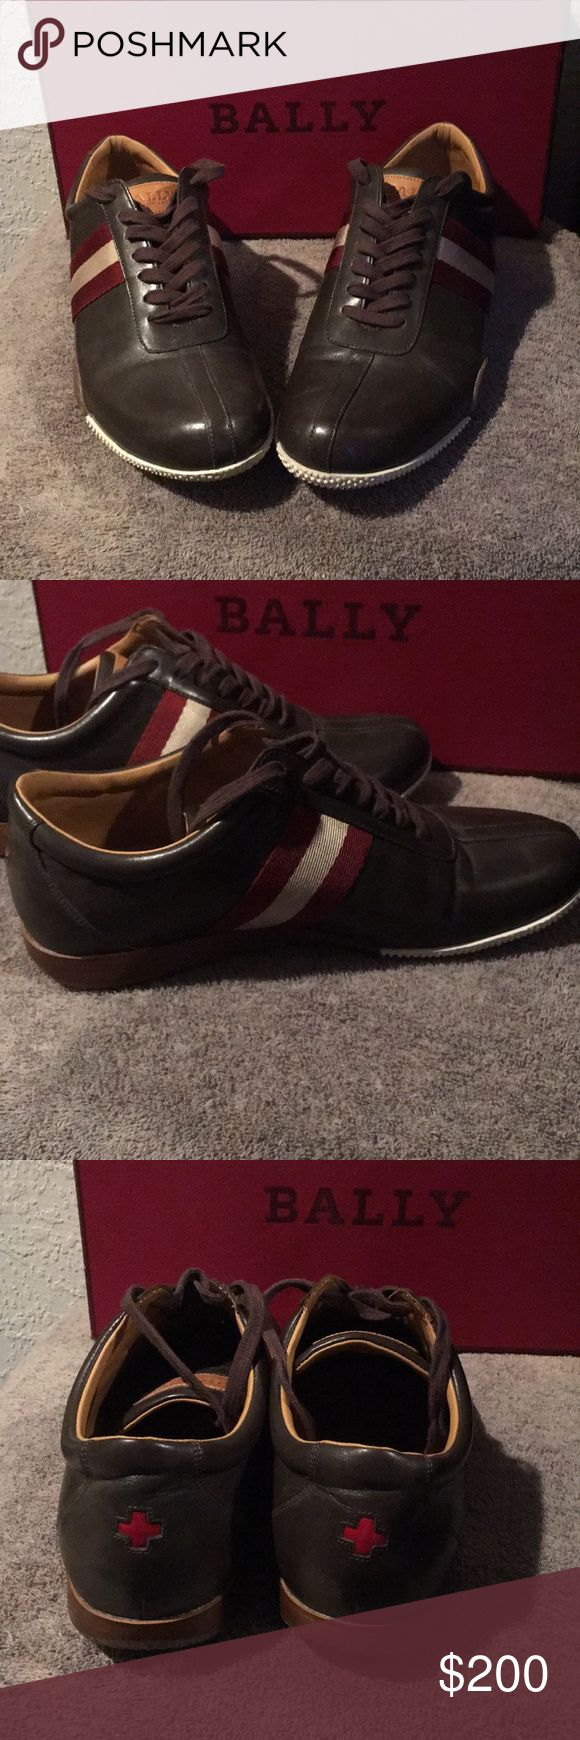 Bally men shoes Authentic Brown Bally loafers. In excellent condition. Bally Shoes Loafers & Slip-Ons